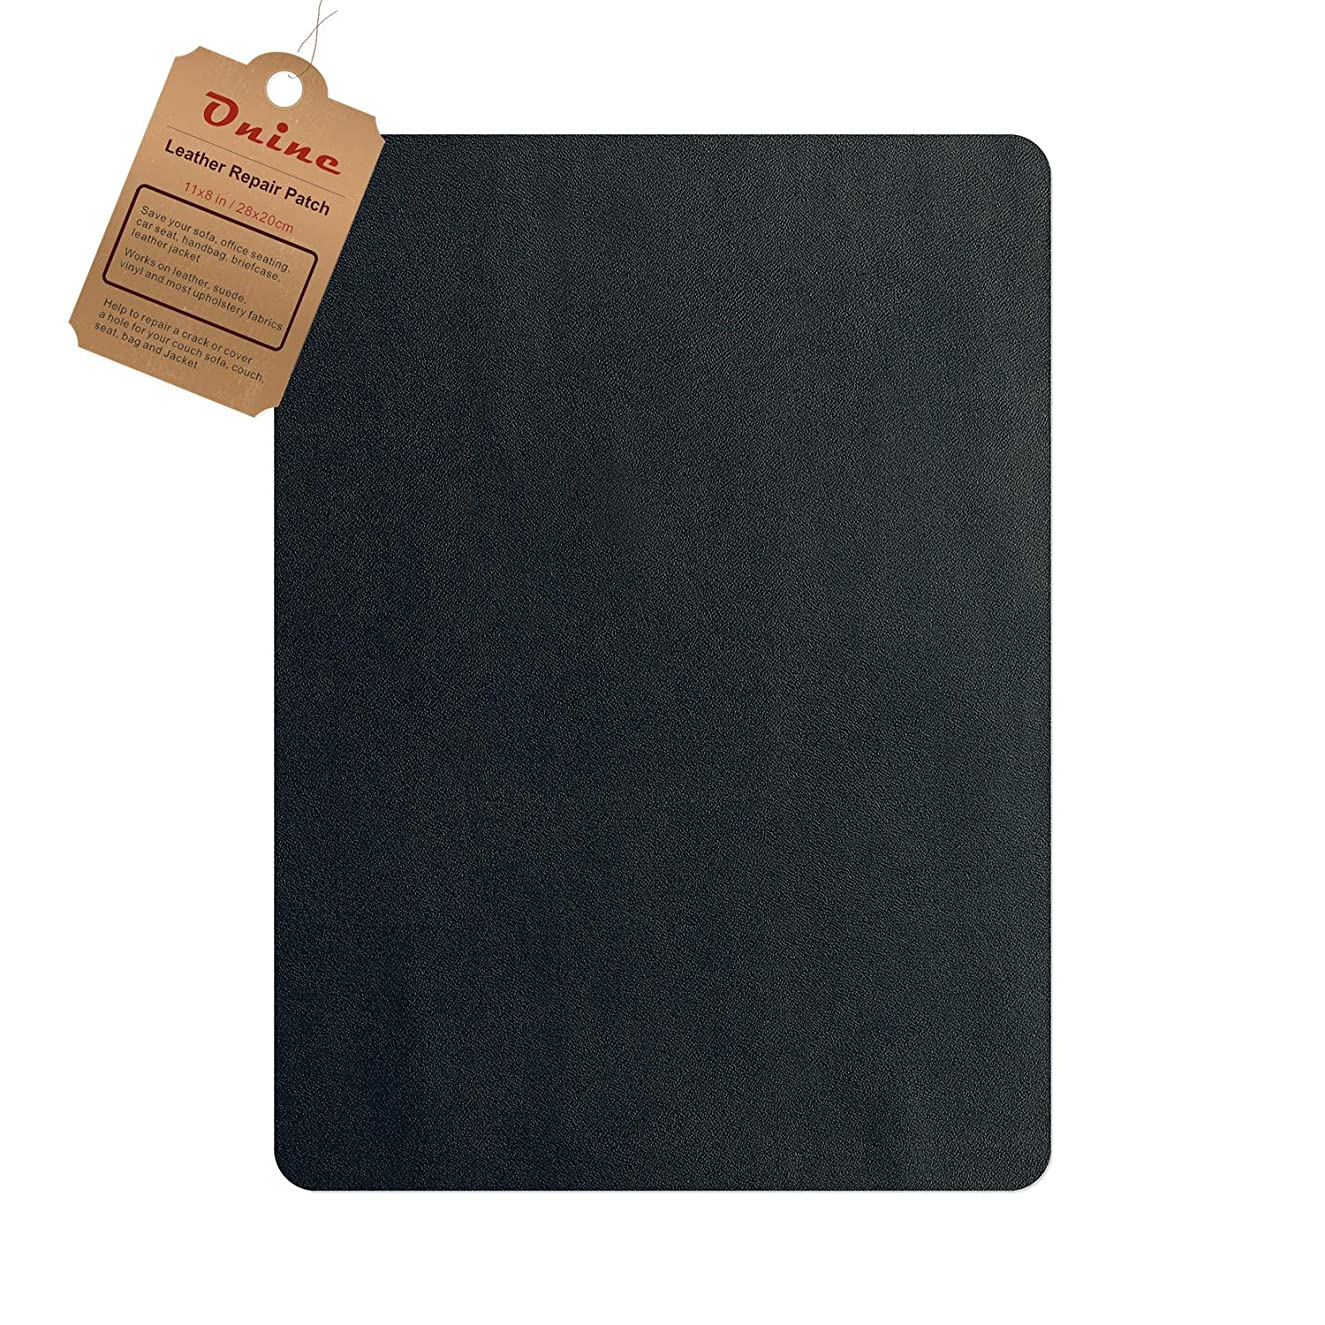 Leather Repair Patch,Self-Adhesive Couch Patch,Multicolor Available Anti Scratch Leather 8X11 Inch Peel and Stick for Sofas, car Seats Hand Bags Jackets (Navy Blue)